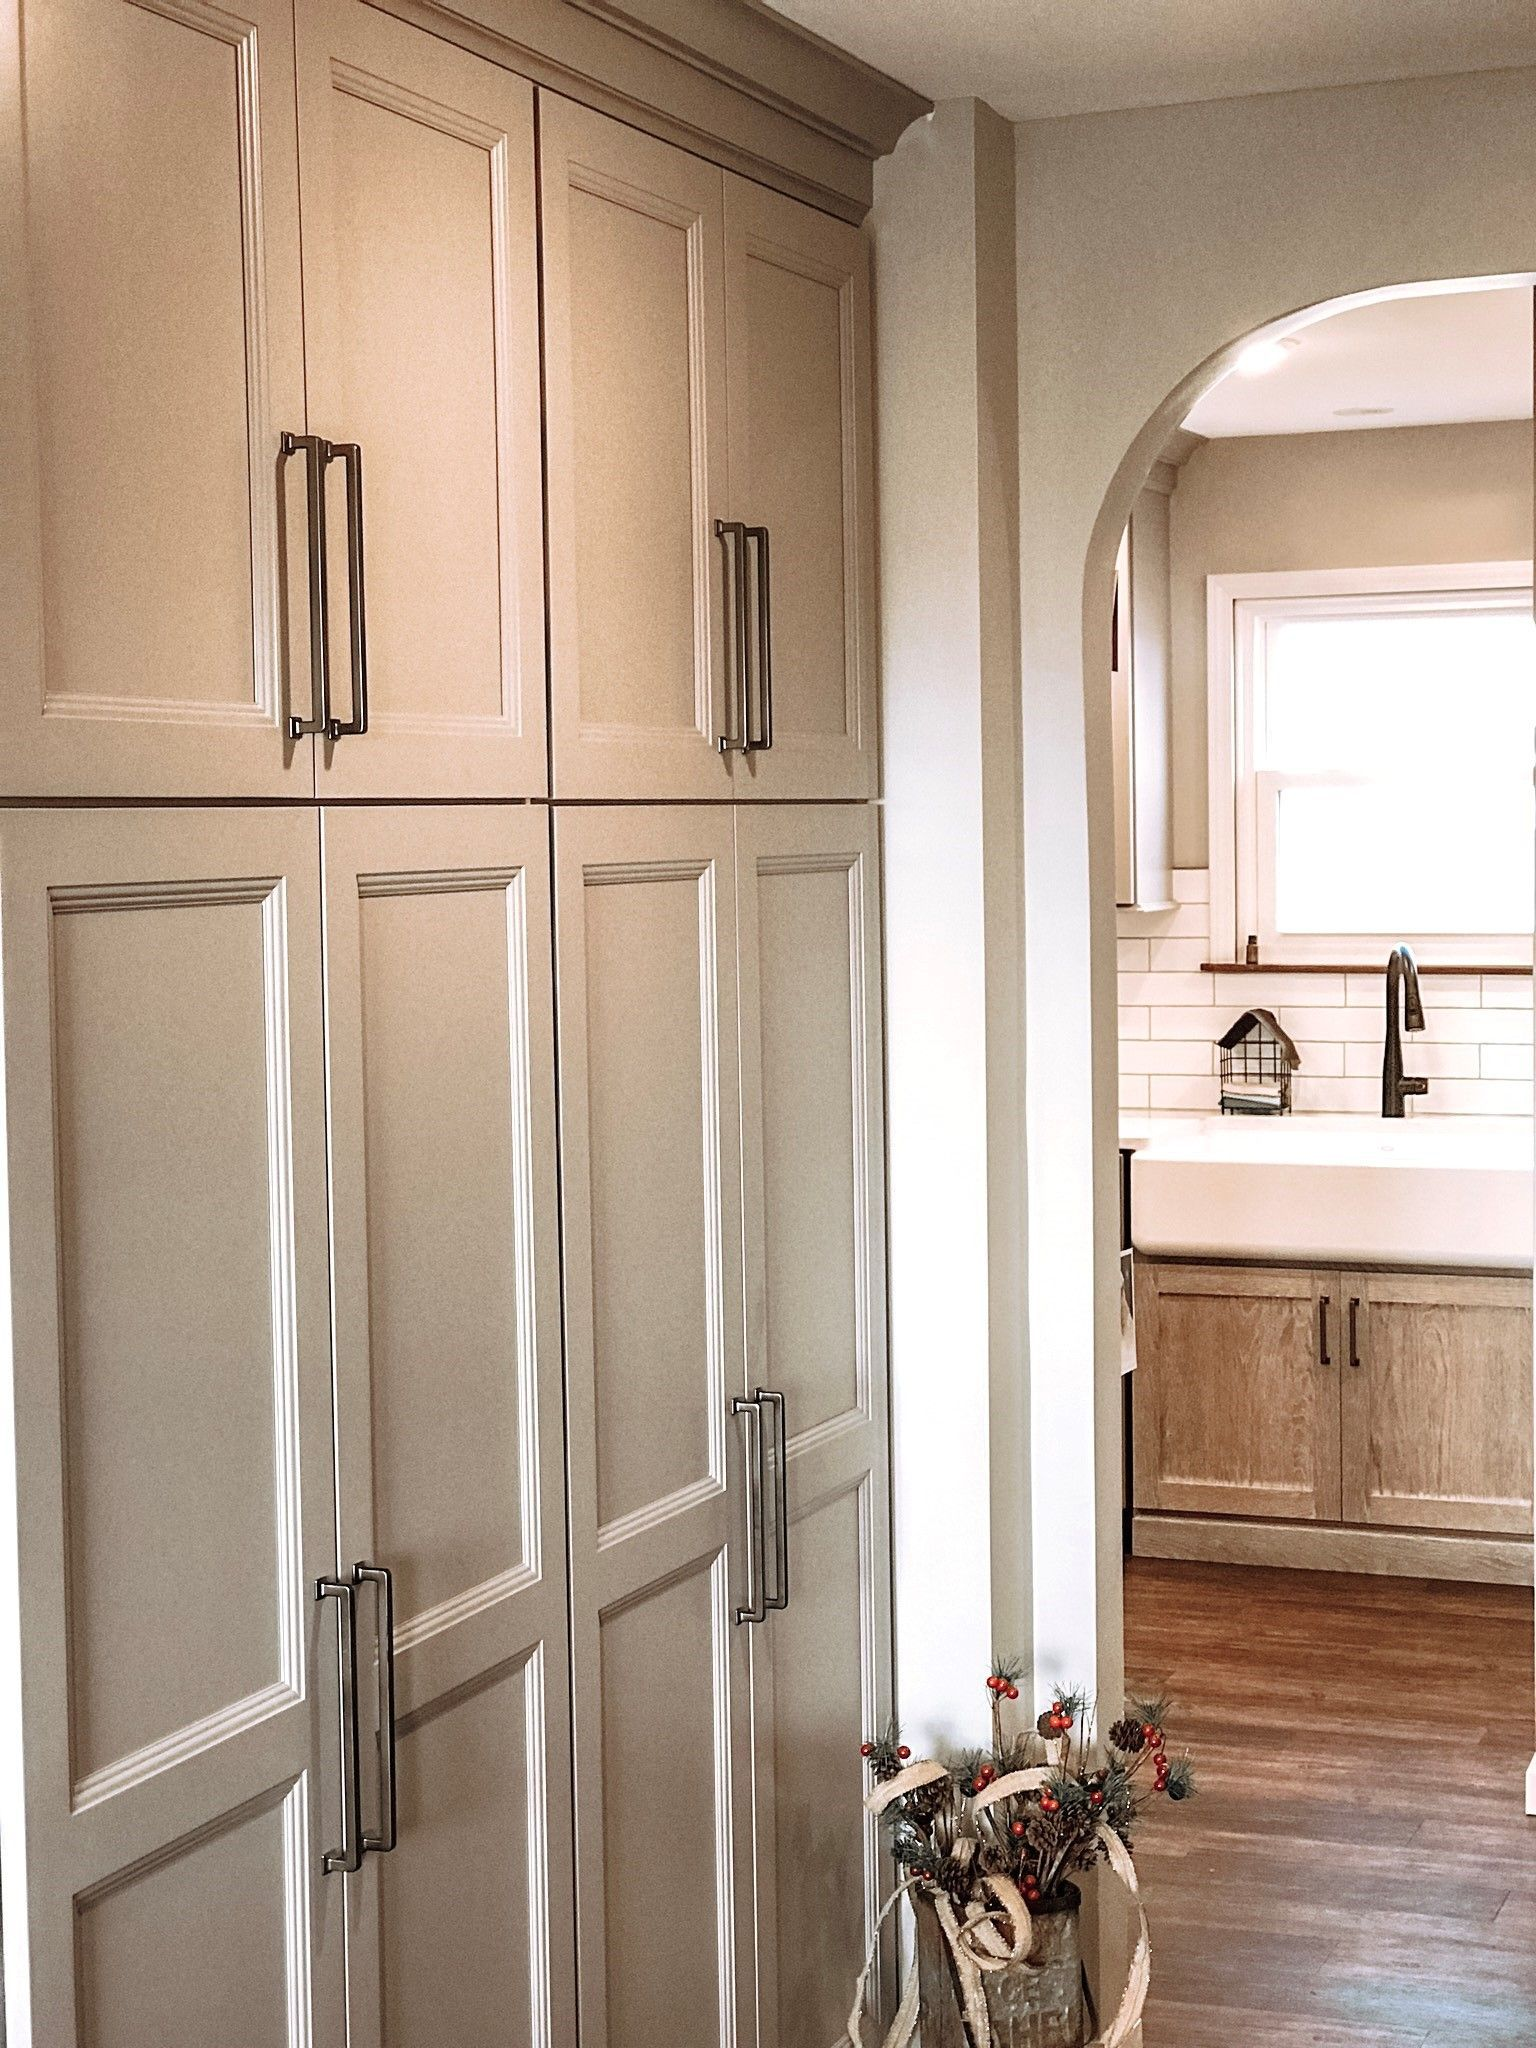 pantry storage full wall cabinets in 2020 pantry wall on wall cabinets id=51746